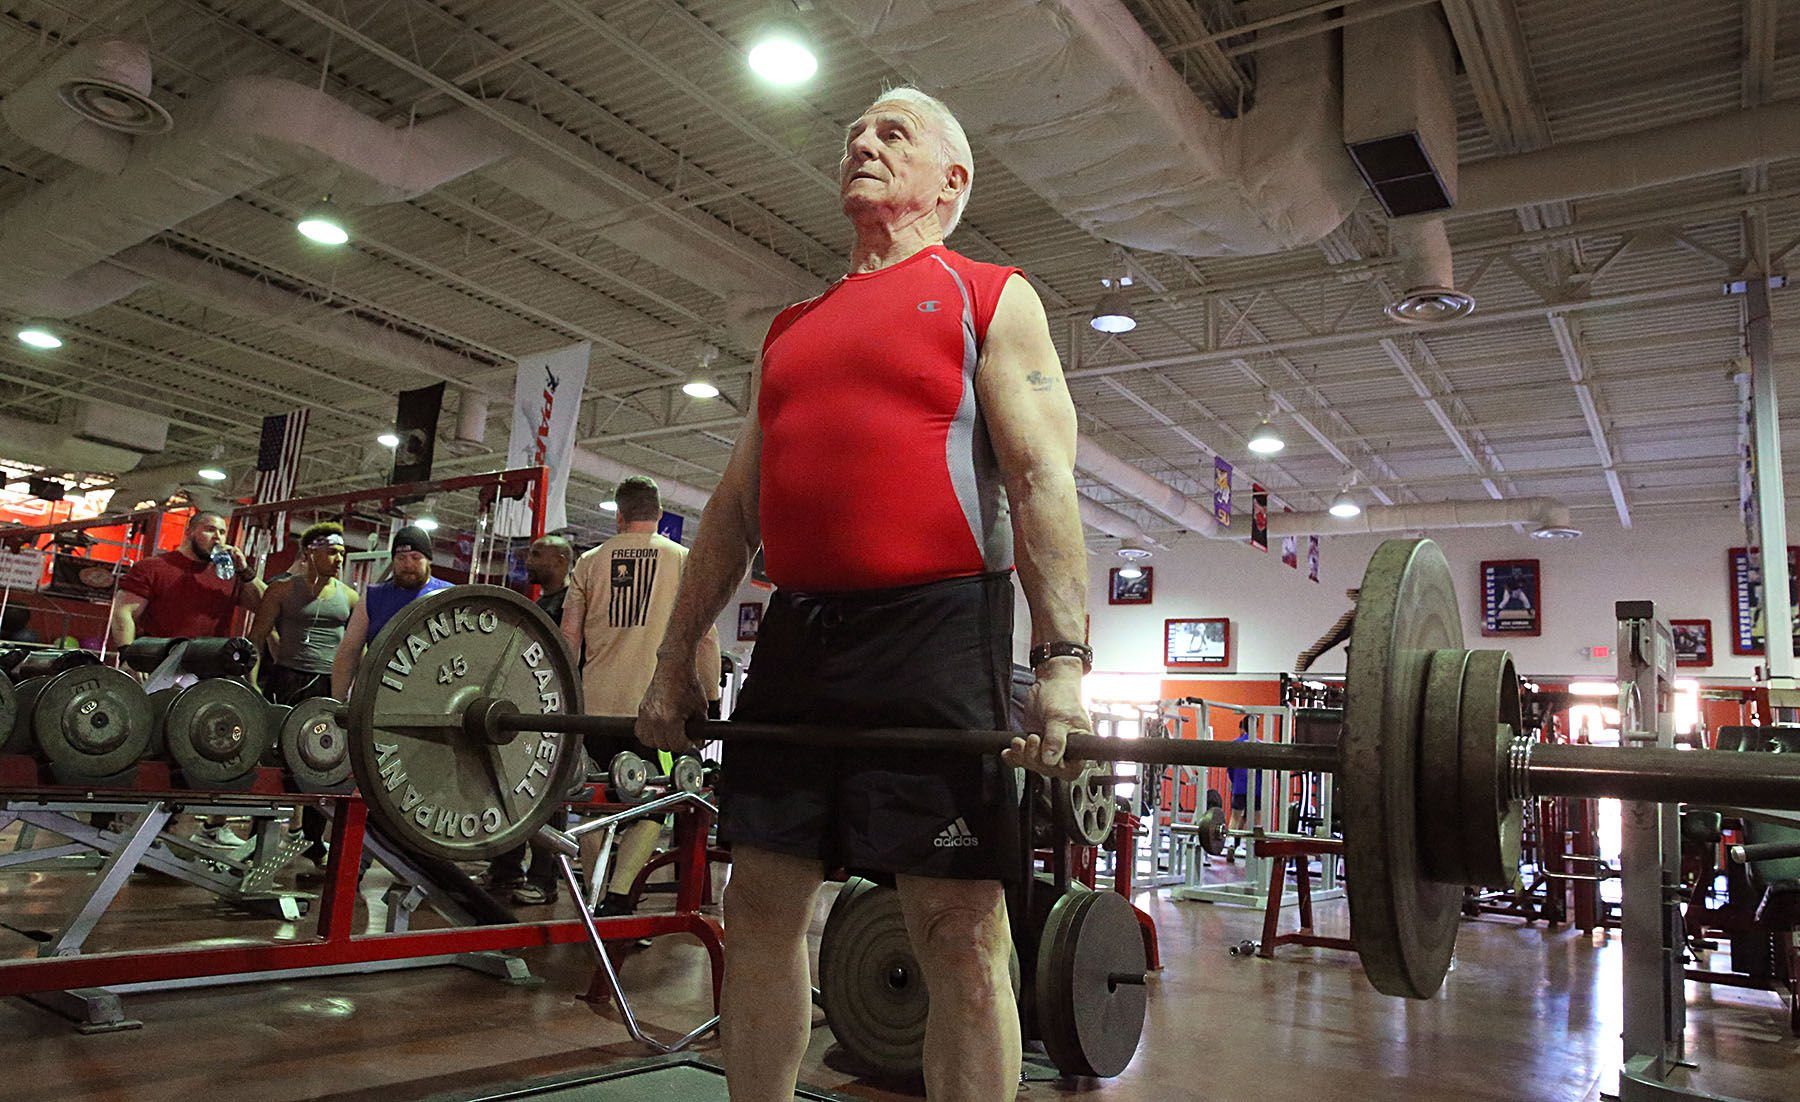 WATCH 80 year old Galloway powerlifter Sports